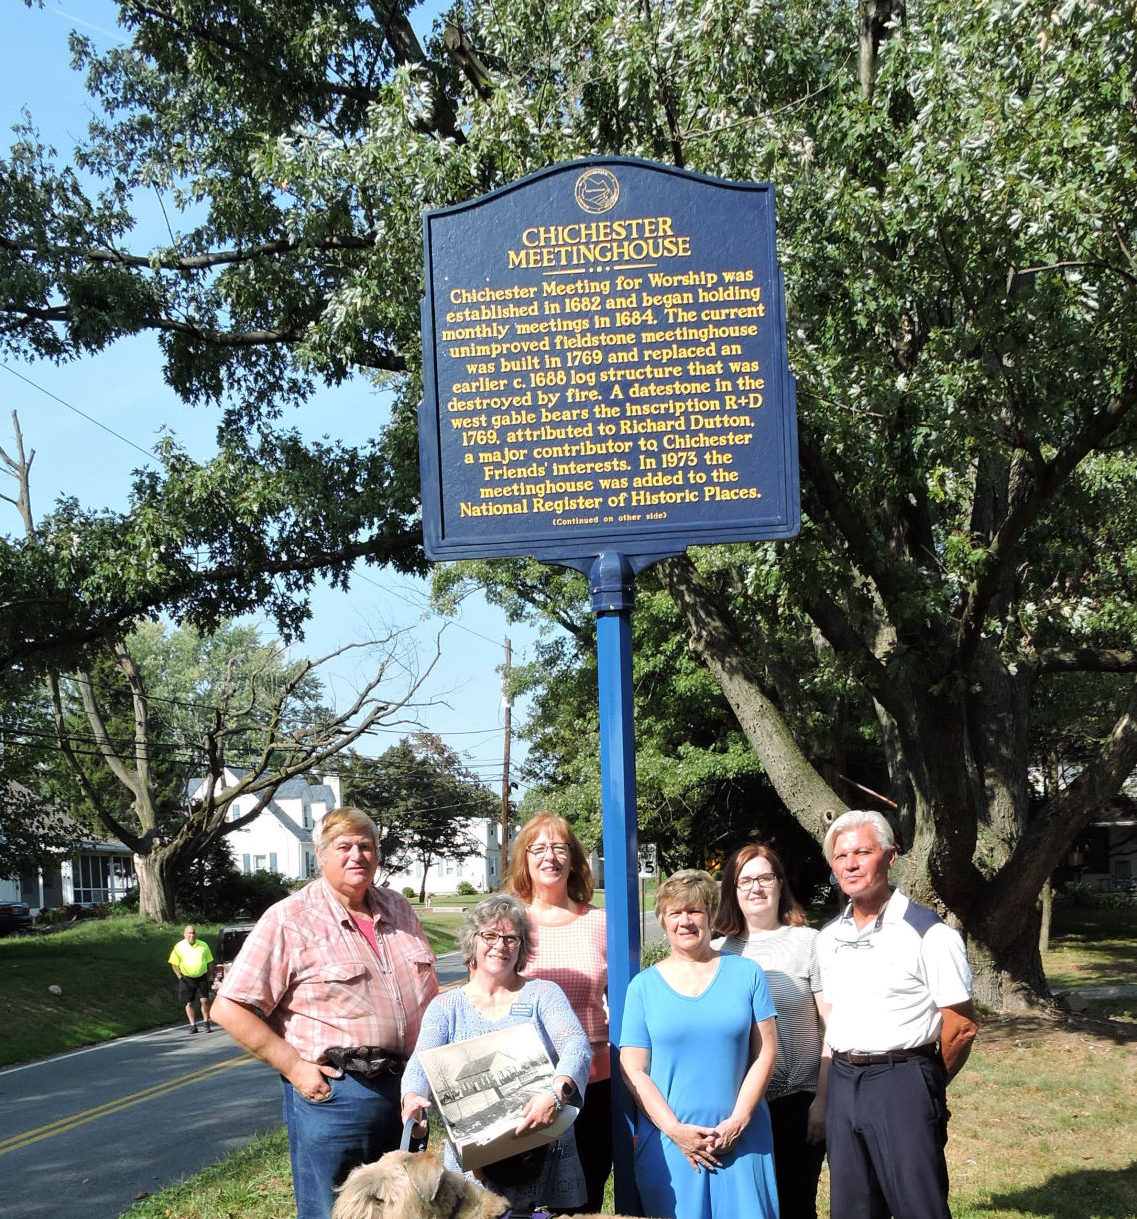 Chichester Meetinghouse Building Celebrates 250 Years With New Roadside Marker